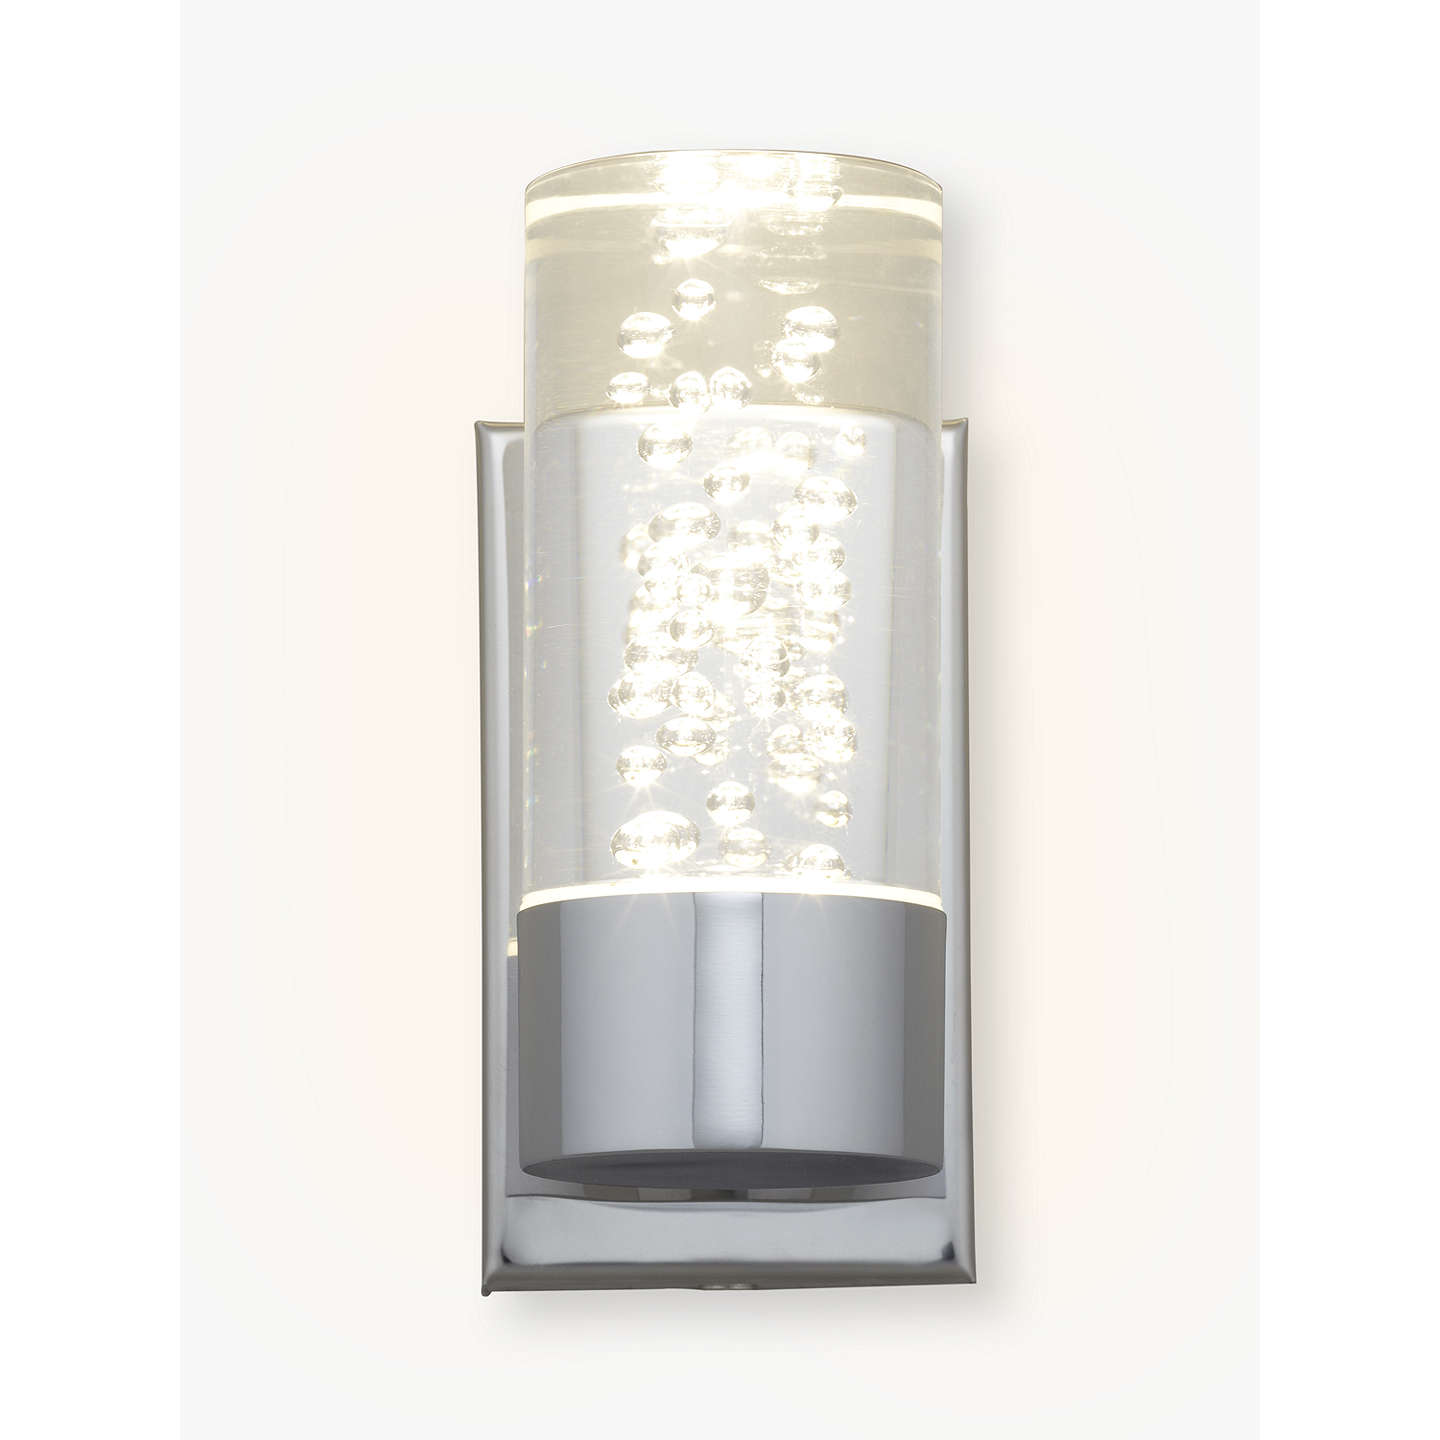 wall lights for bathroom lewis zeus bubbles bathroom wall light at lewis 21303